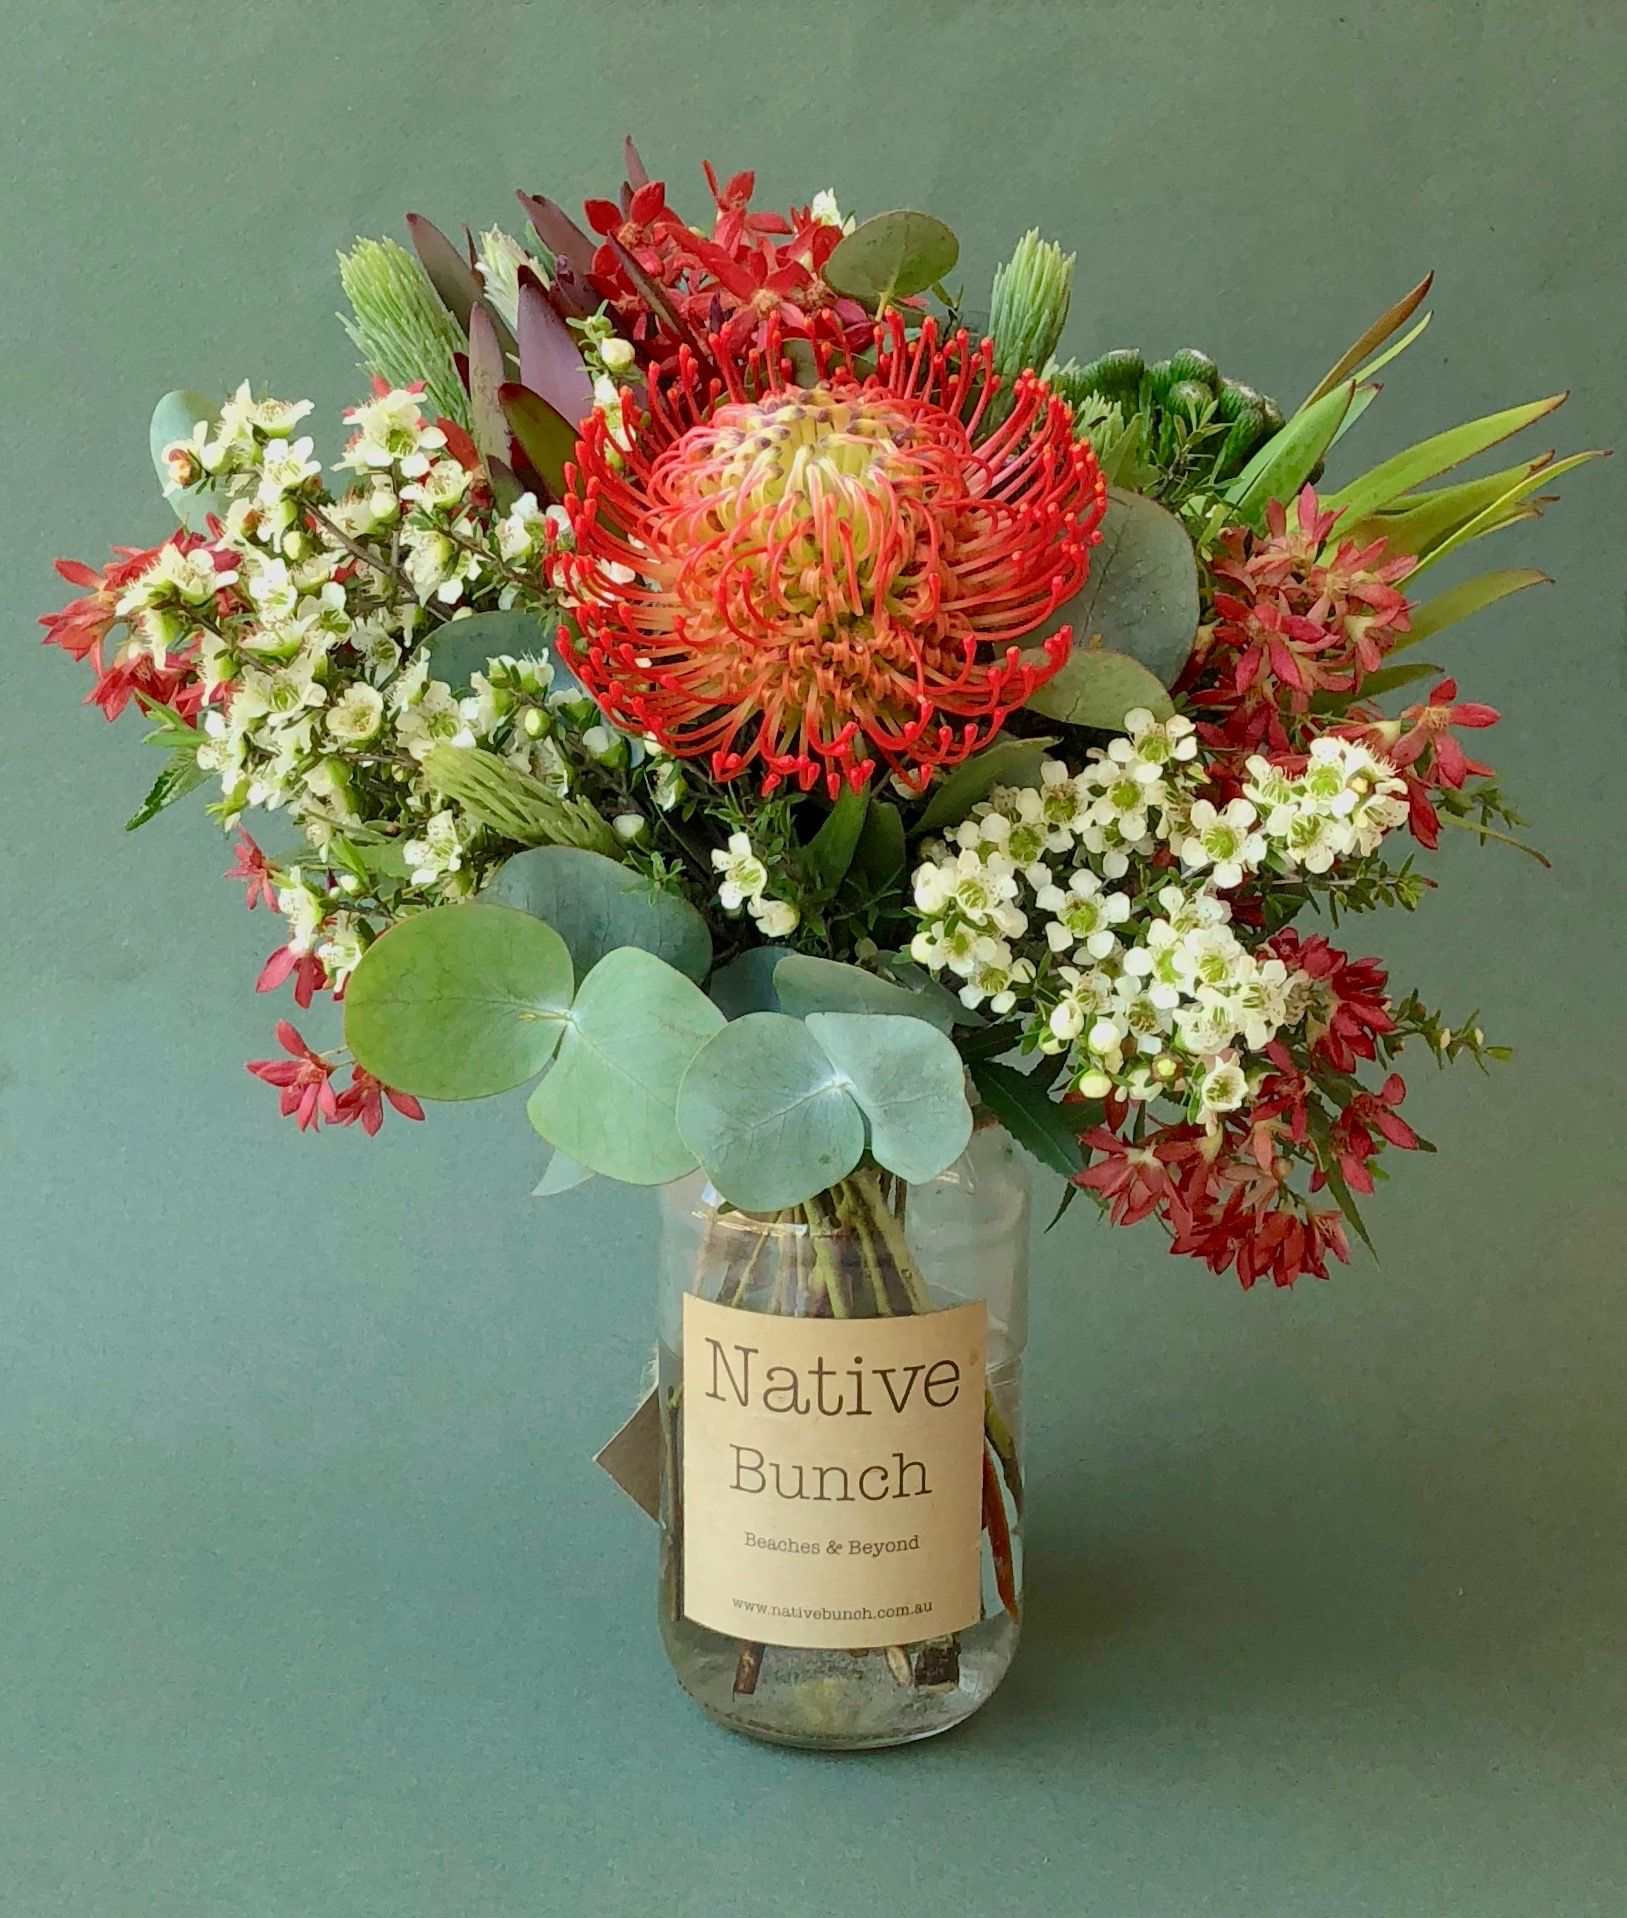 Christmas Posy At Native Bunch Red Pincushion White Ti Tree Red Christmas Bush Woolly Bush Berzilli Flower Bouq Australian Native Flowers Flower Delivery